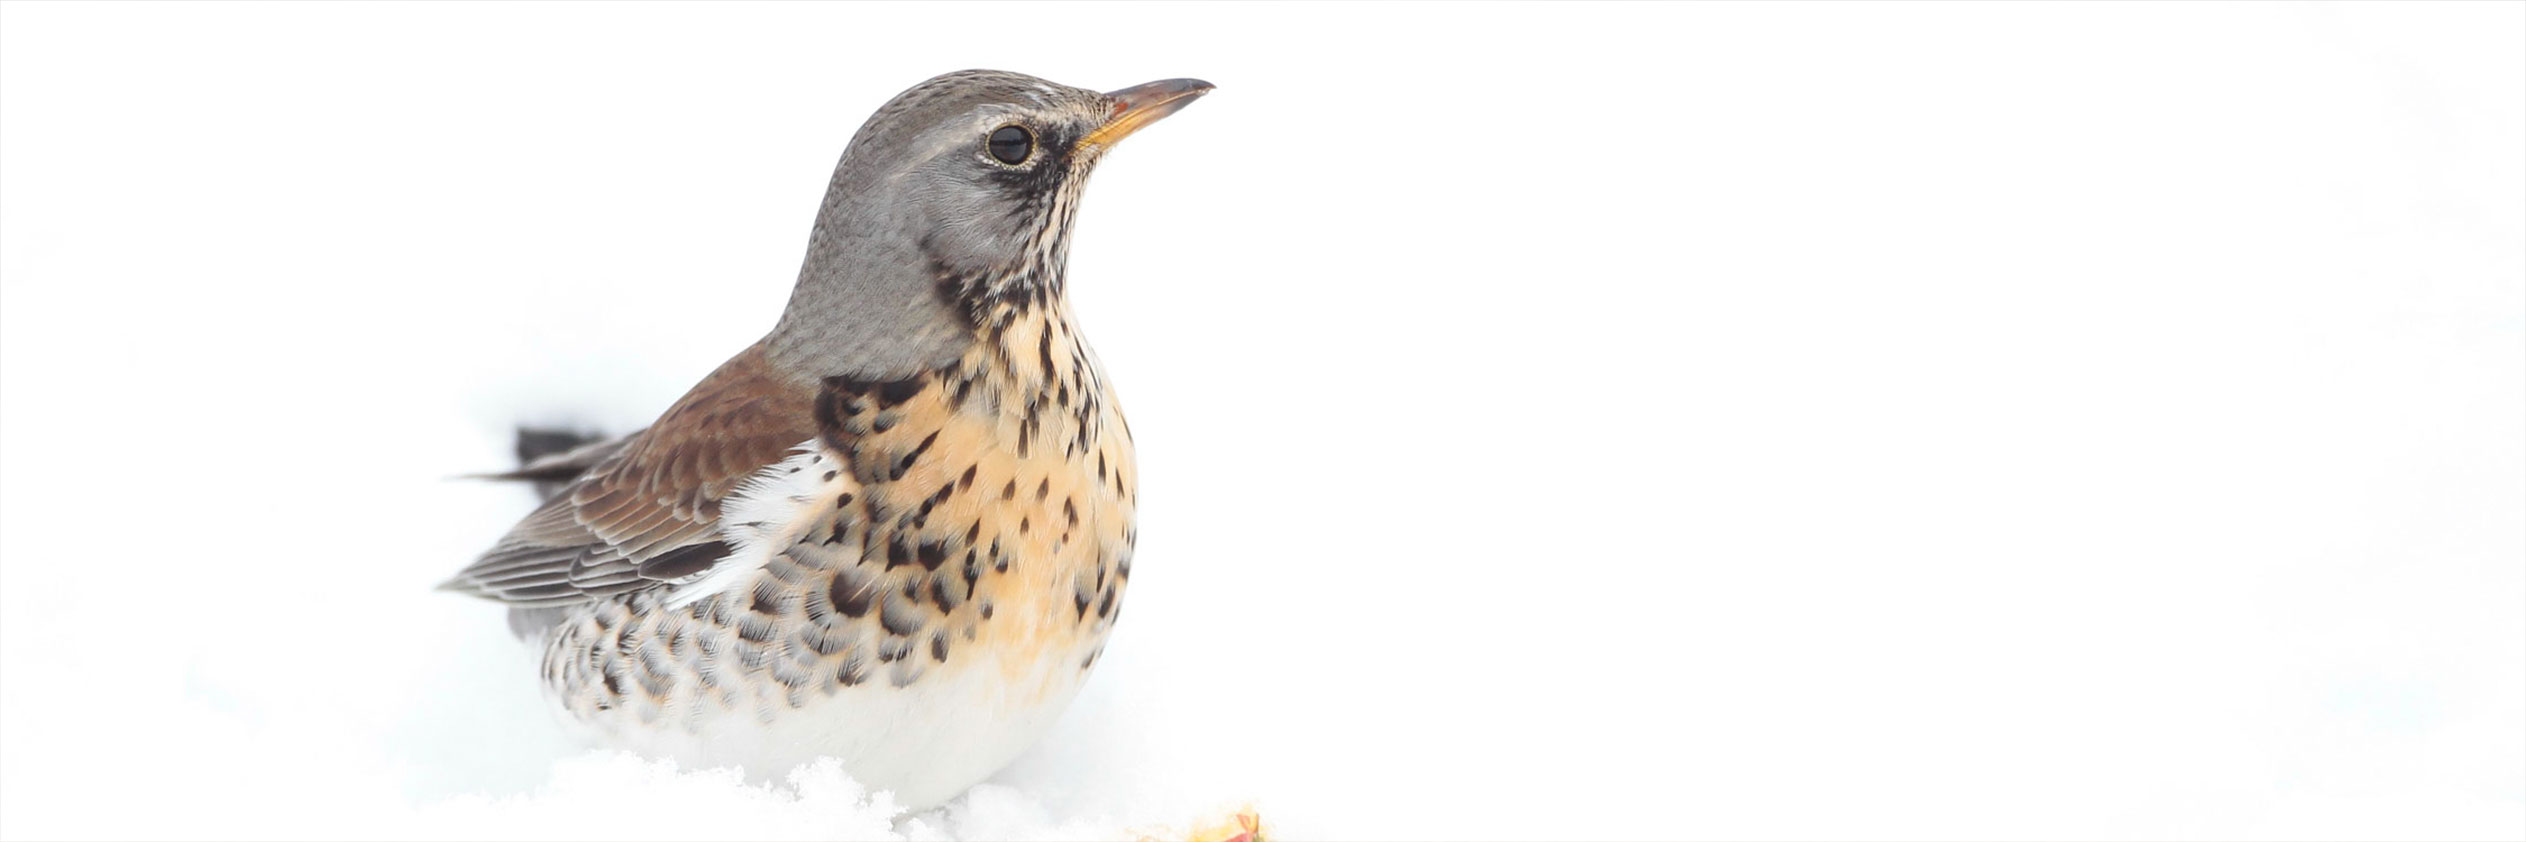 Great views of winter thrushes, a wildlife photographers guide